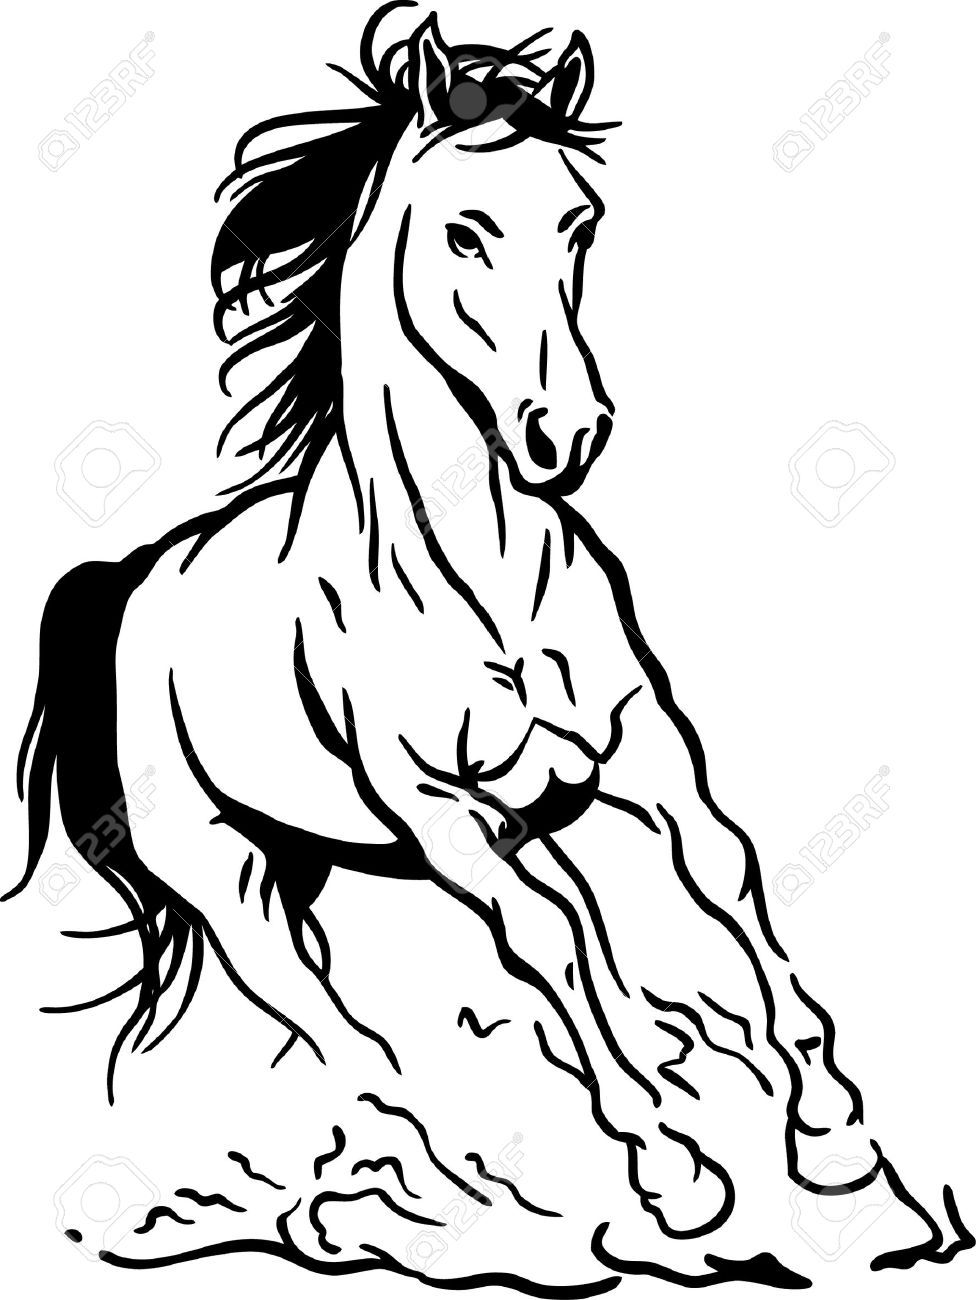 Horse Clipart Black And White : horse, clipart, black, white, Running, Horse, Wall,, Illustration,, Horses